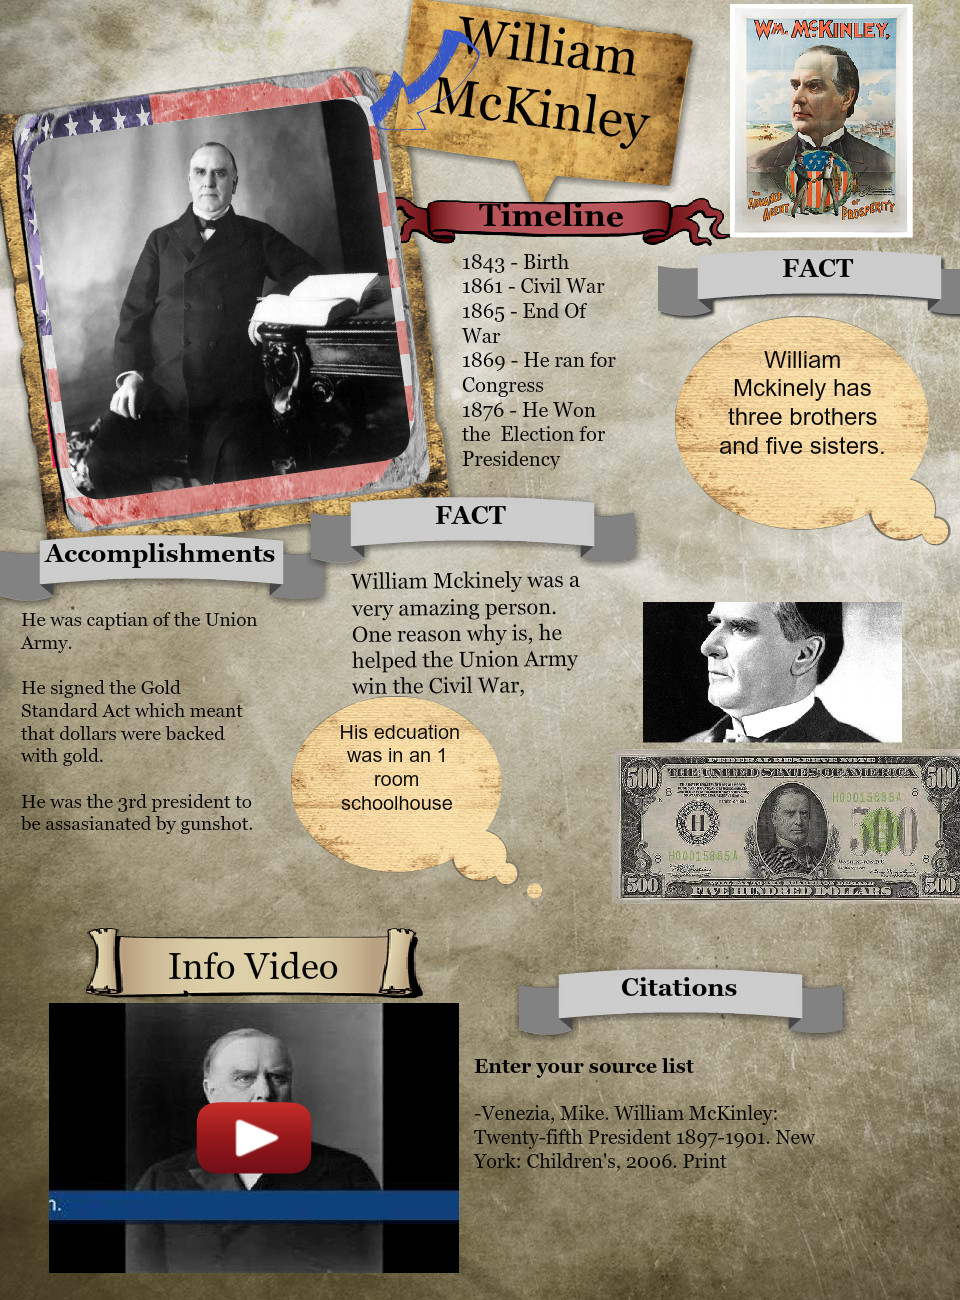 [2014] Jia Weingard (Grade 4 2014): William McKinley